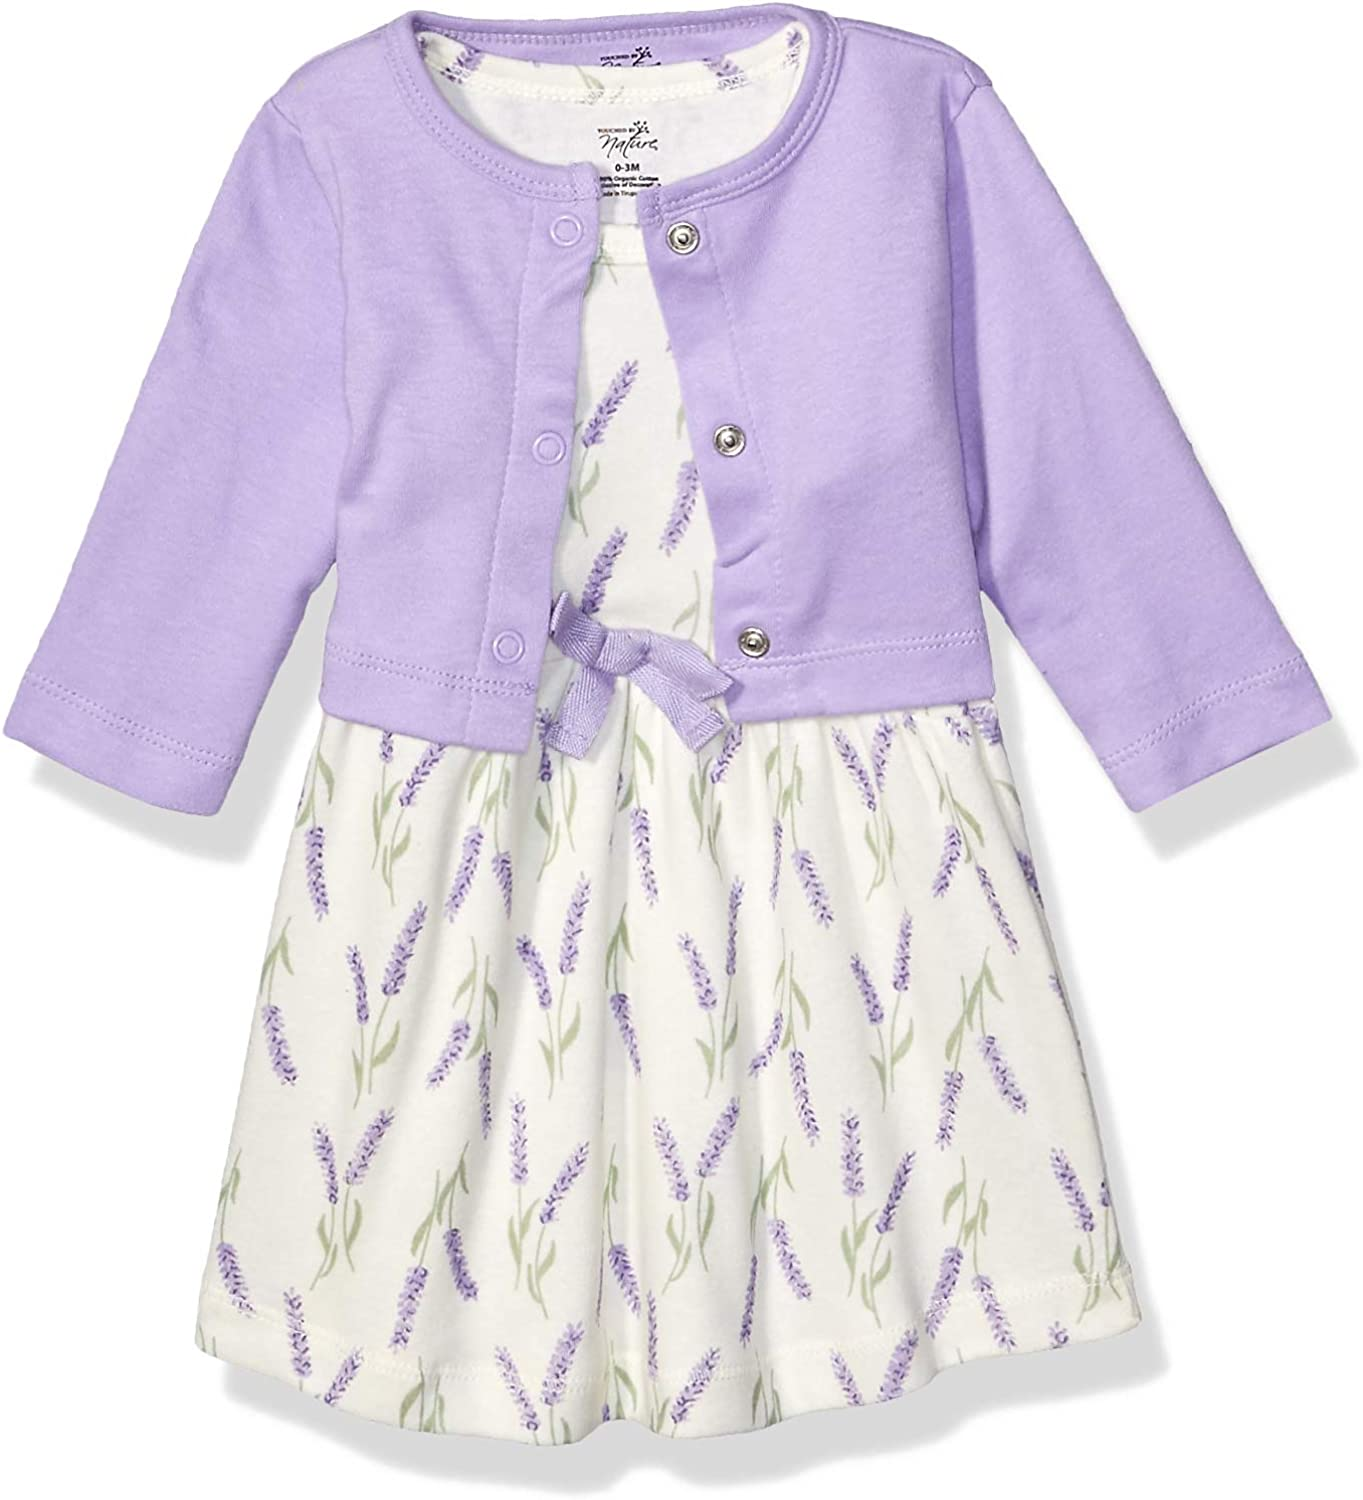 Touched by Nature Baby Girls Organic Cotton Cardigan and Dress Casual